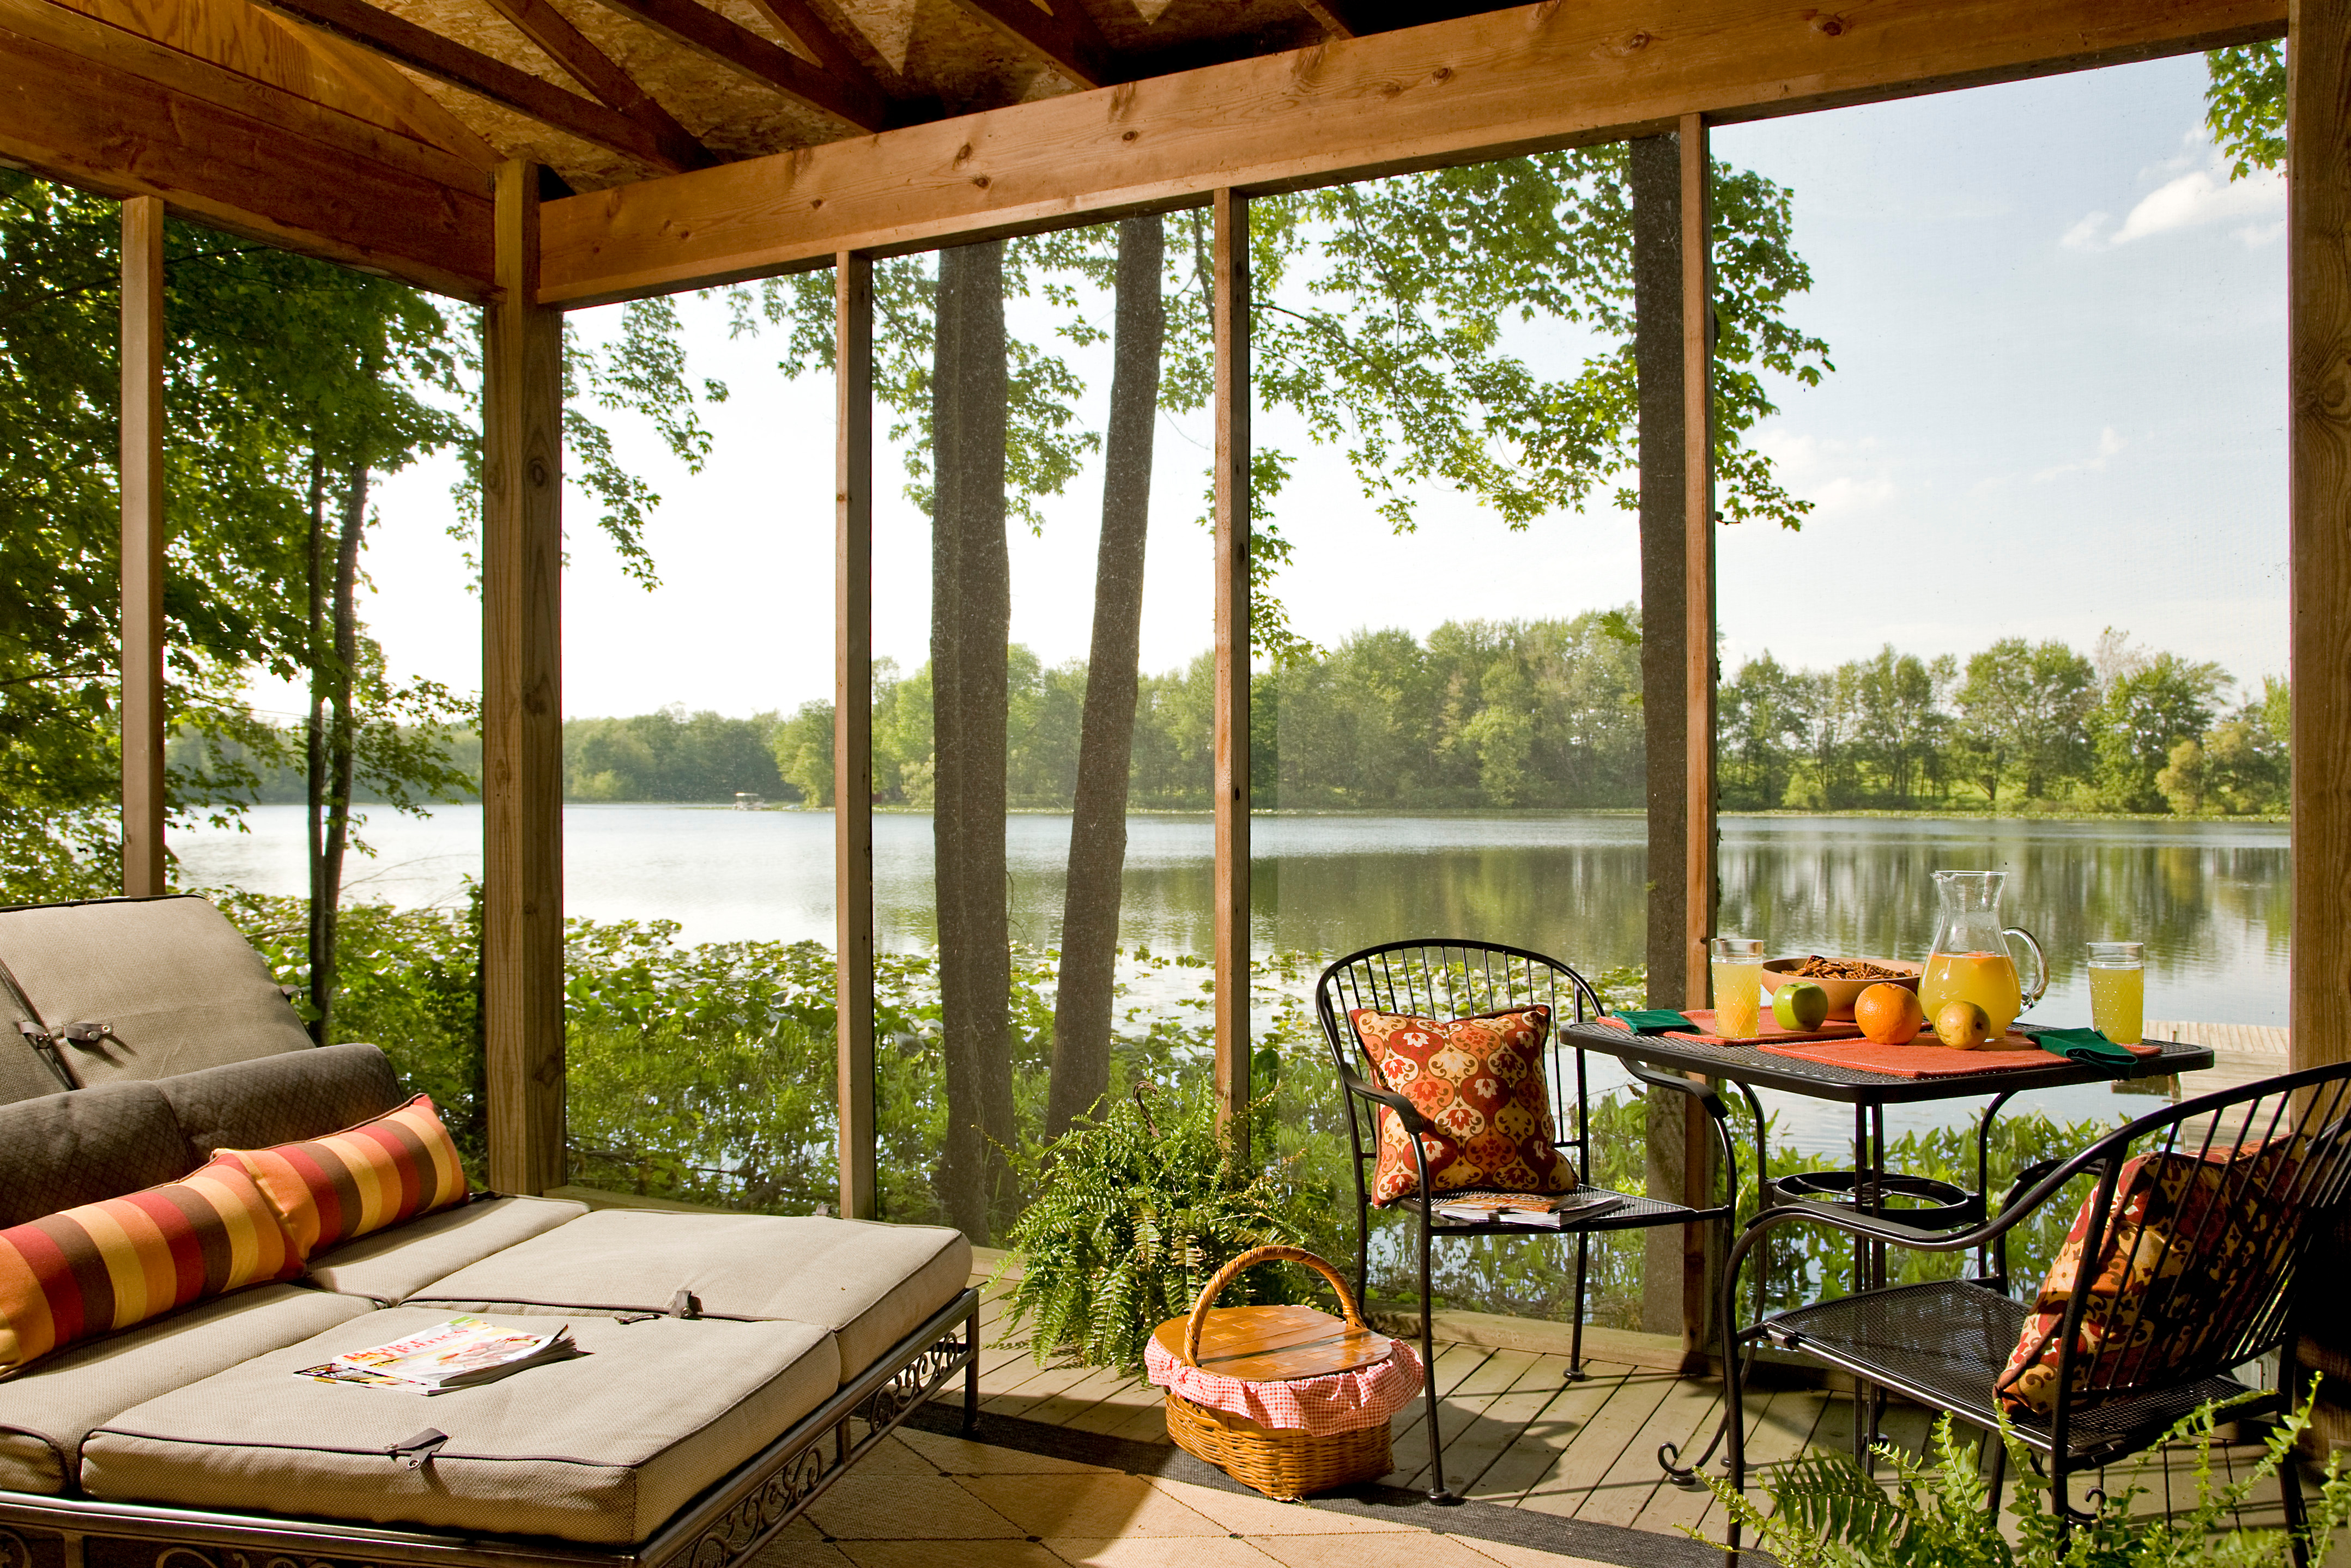 Weekend Spa Getaways Michigan | Michigan Weekend Getaways | Great Weekend Getaways in Michigan